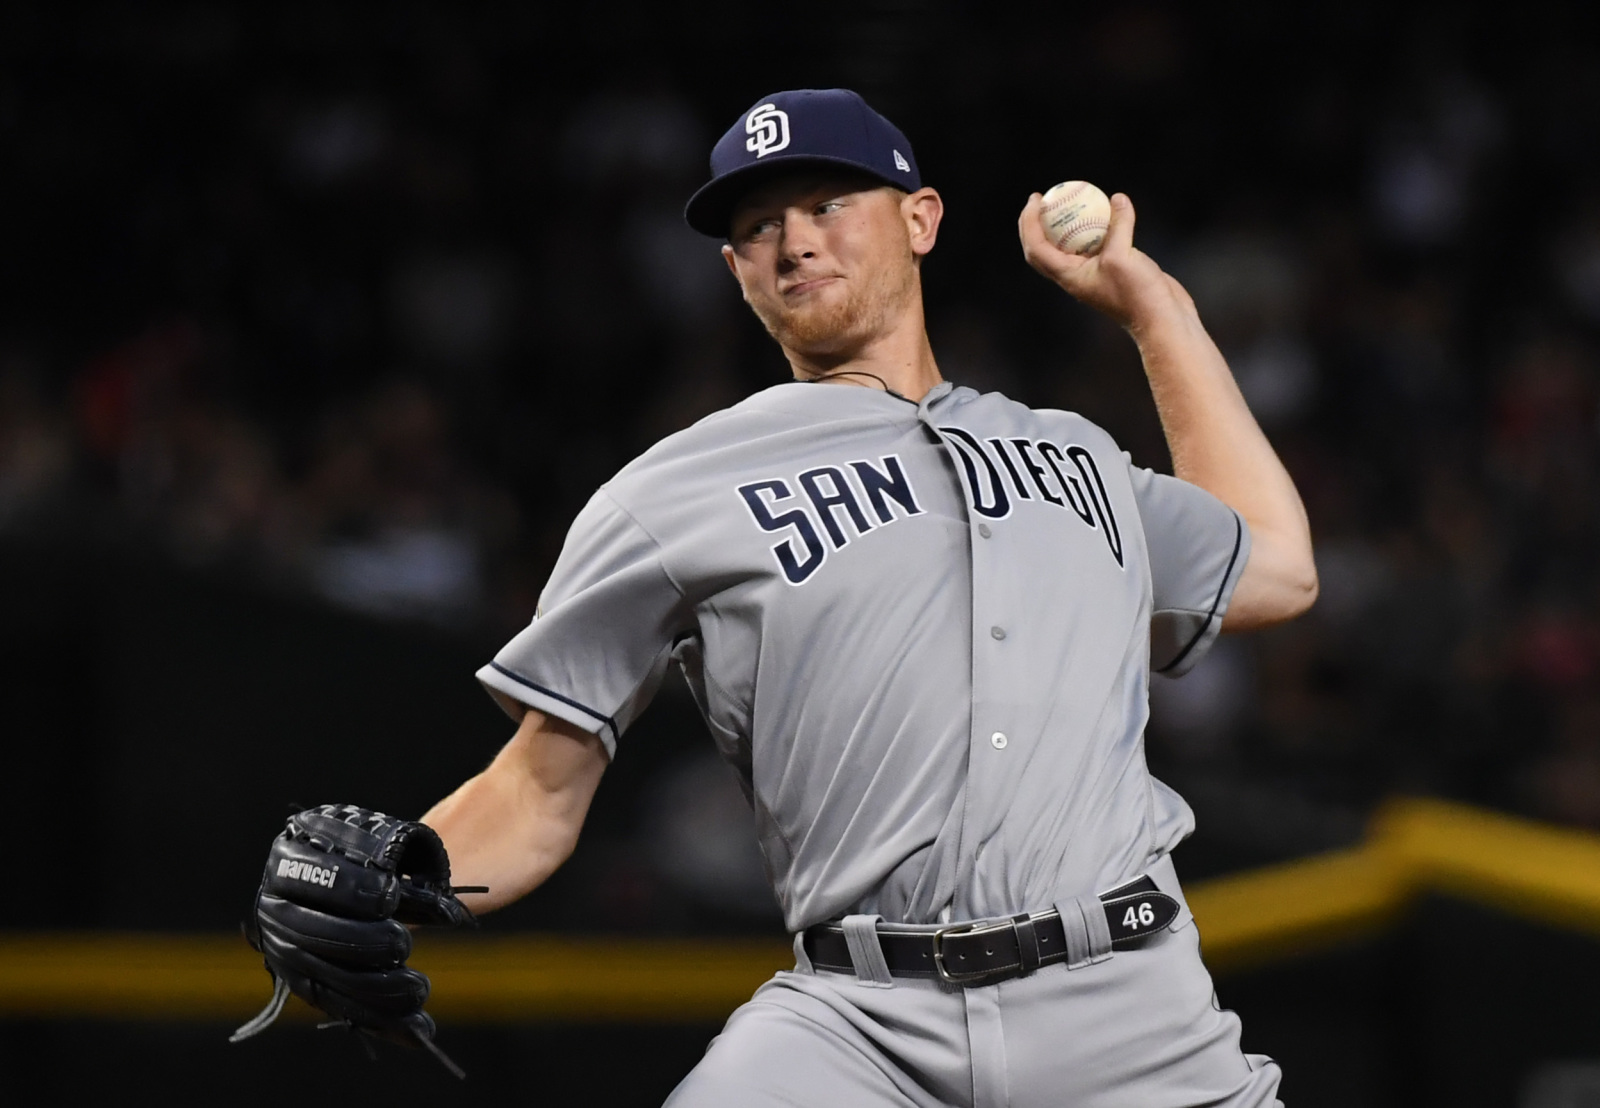 Brewers: Could Eric Lauer surprise this season?